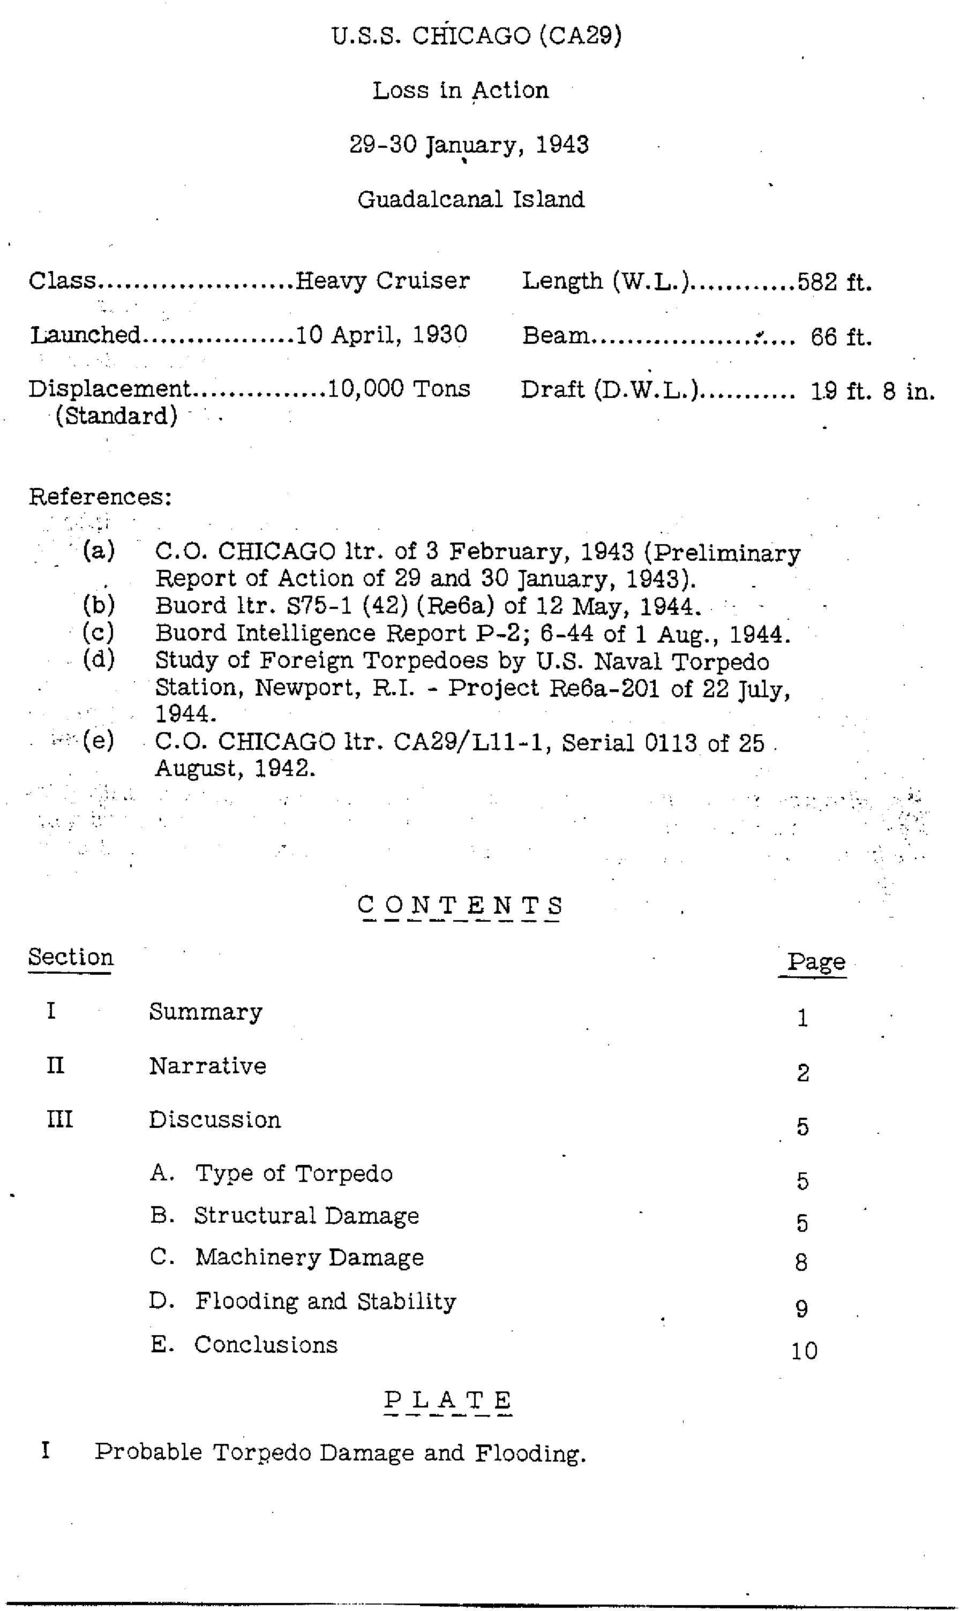 Buord Hr. 875-1 (42) (Re6a) of 12 May, 1944. Buord Intelligence Report P-2; 6-44 of 1 Aug., 1944. Study of Foreign Torpedoes by U.S. Naval Torpedo Station, Newport, R.T. - Project Re6a-201 of 22 July, 1944.